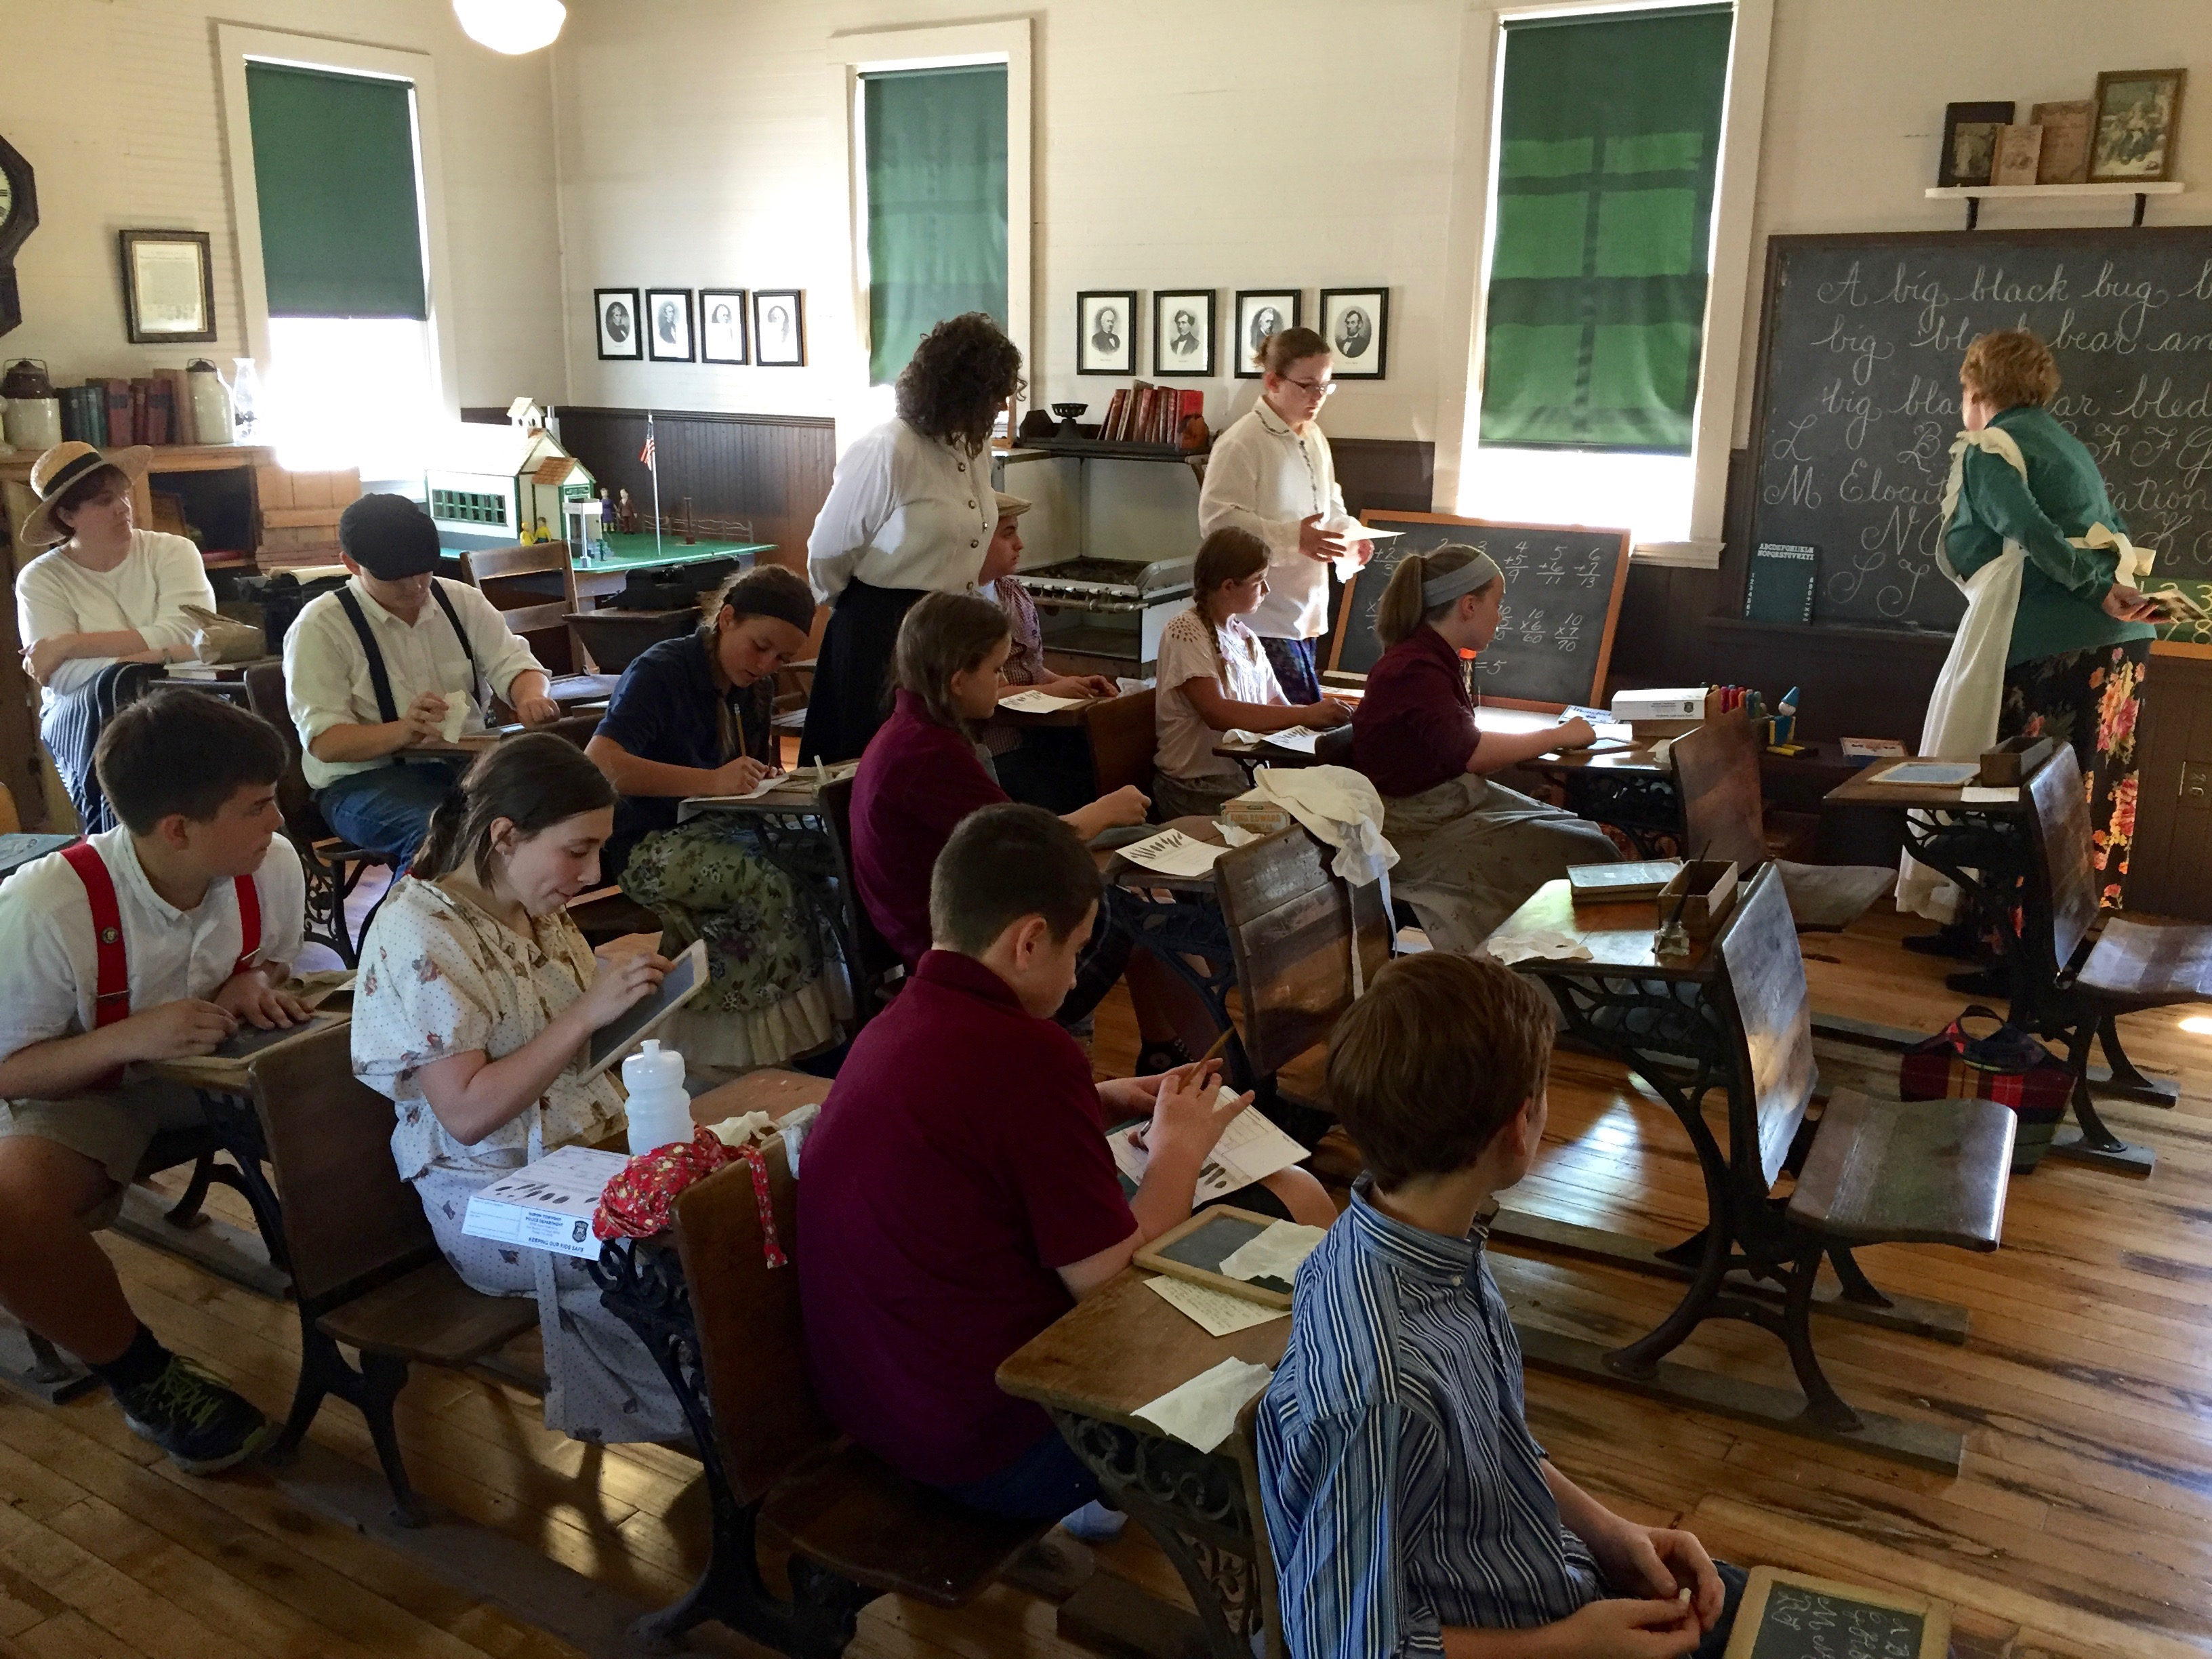 Students go back in time, spend the day at historical Willow School